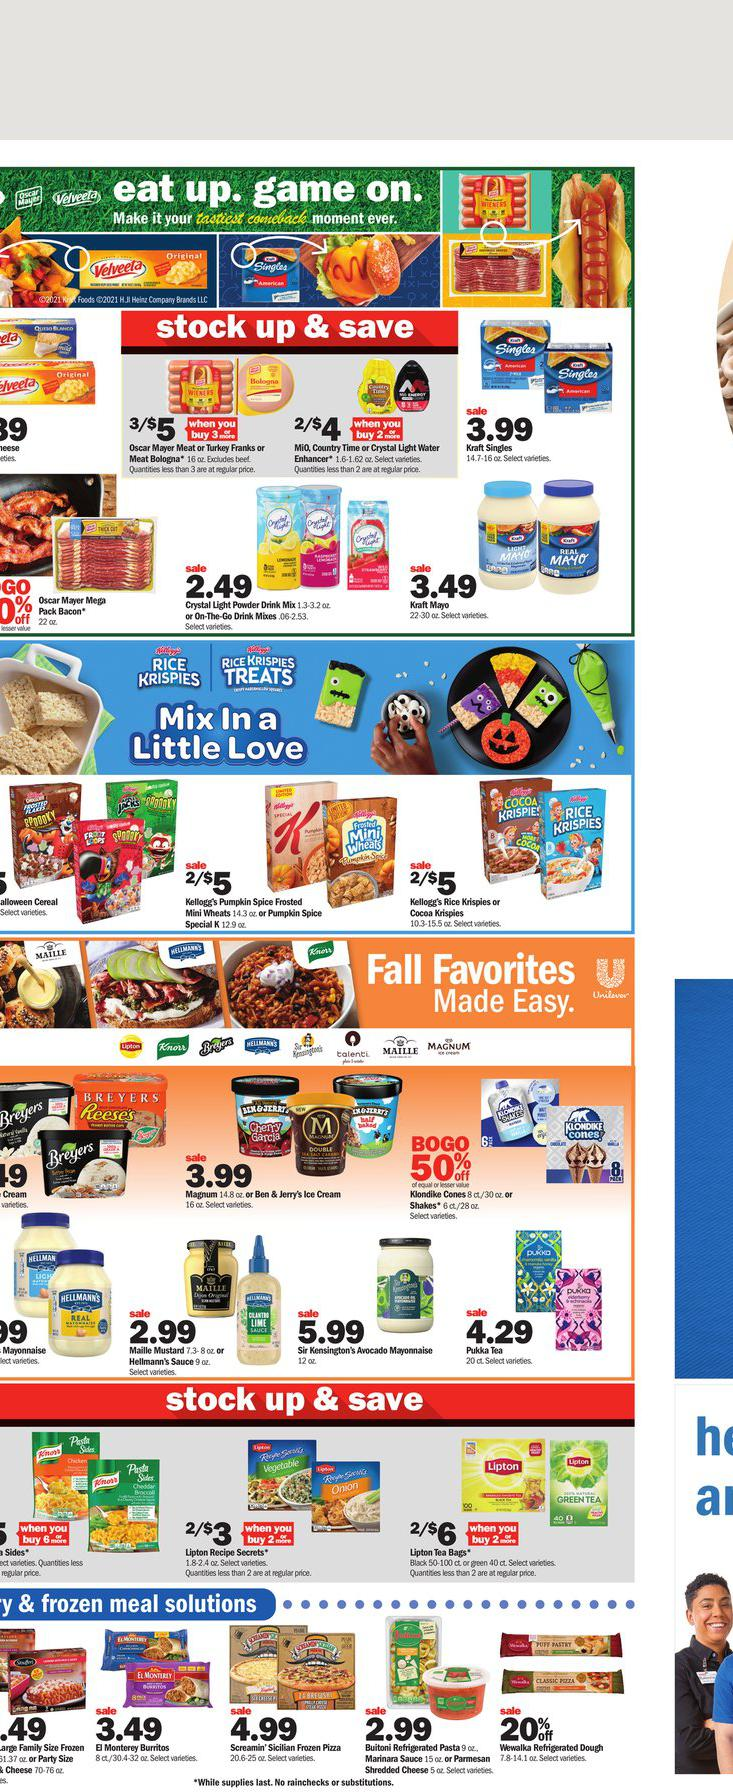 10.10.2021 Meijer ad 7. page